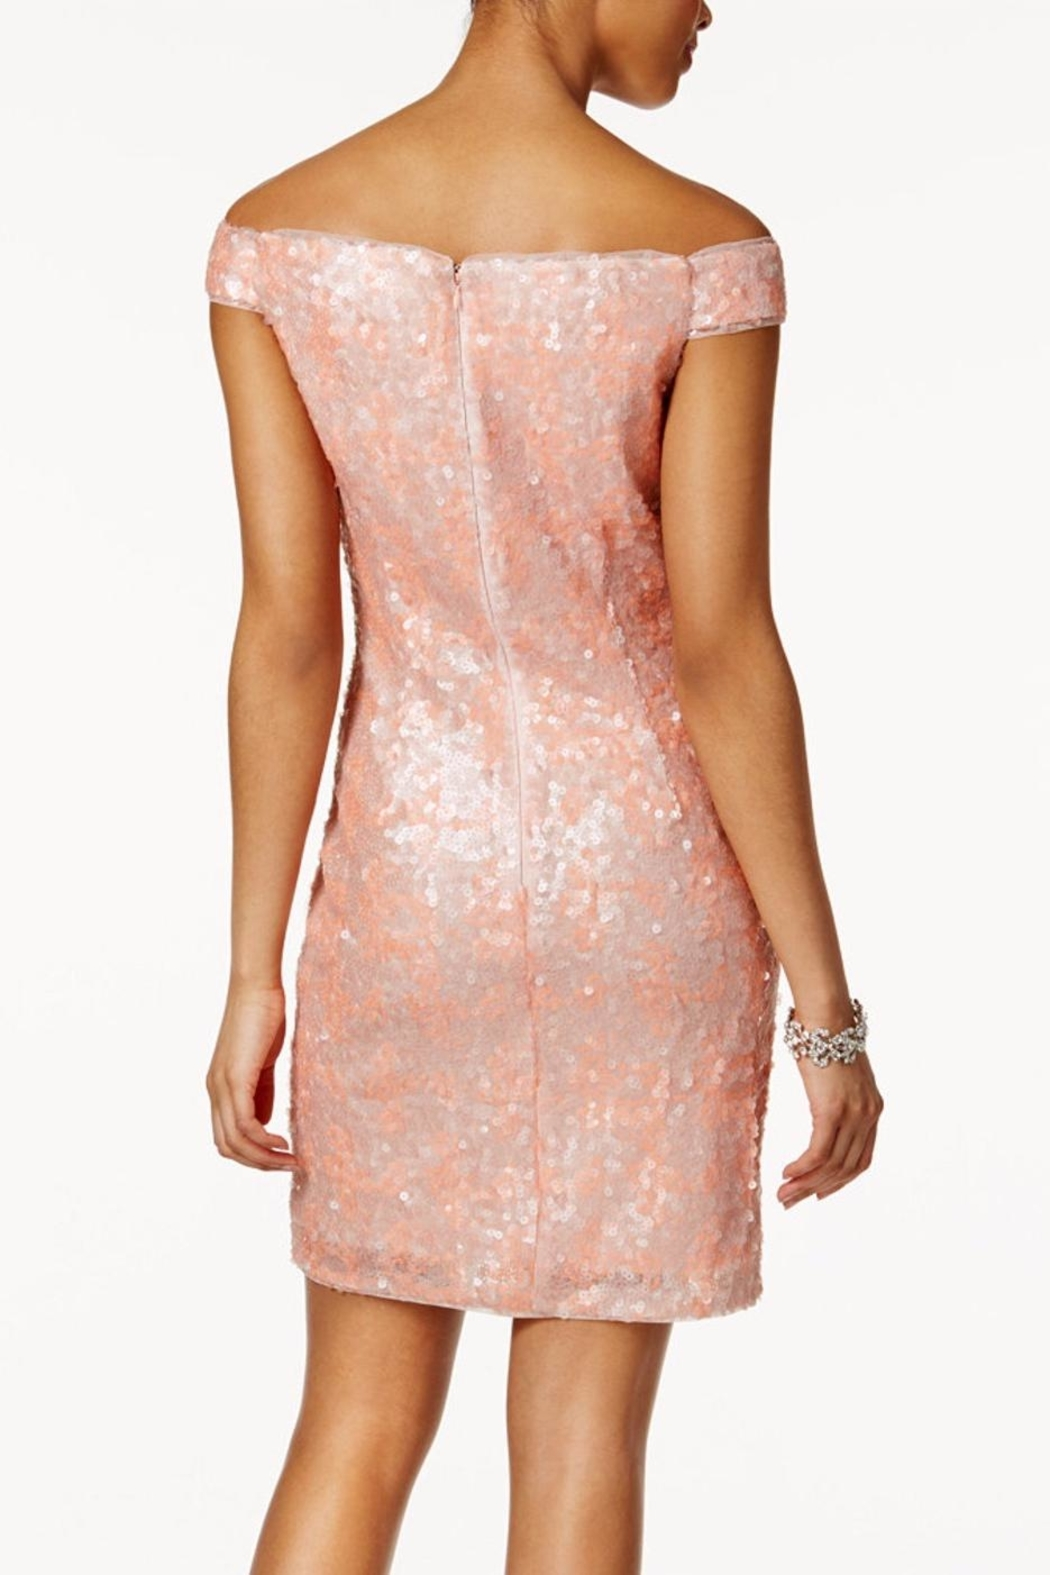 Adrianna Papell Off Shoulder Sheath Dress - Front Full Image